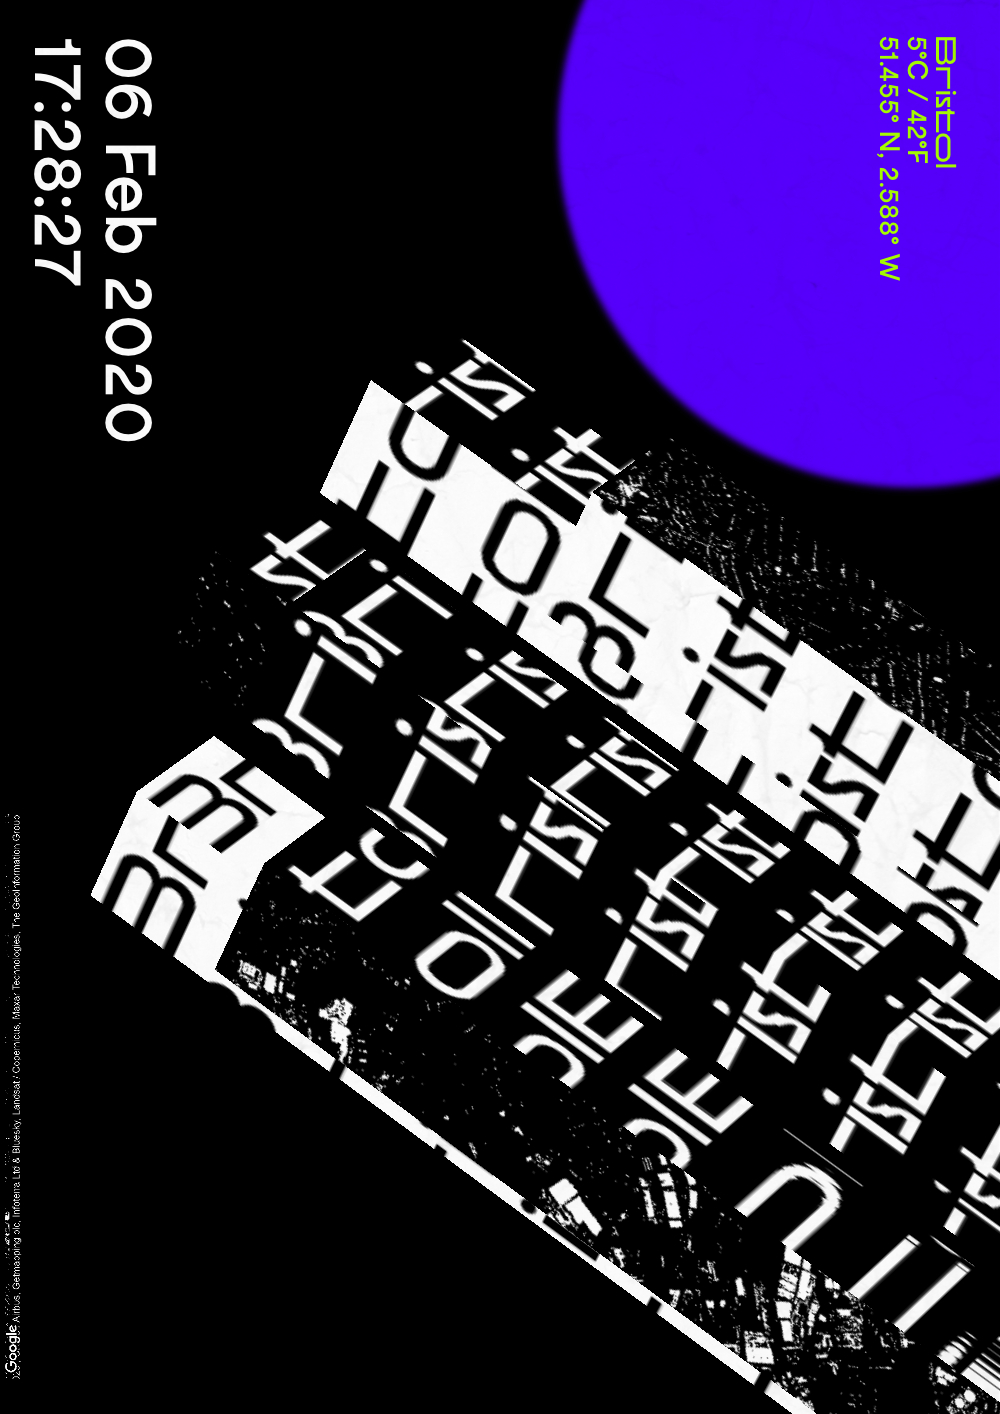 Gallery Gallery Unique Poster Generative Poster